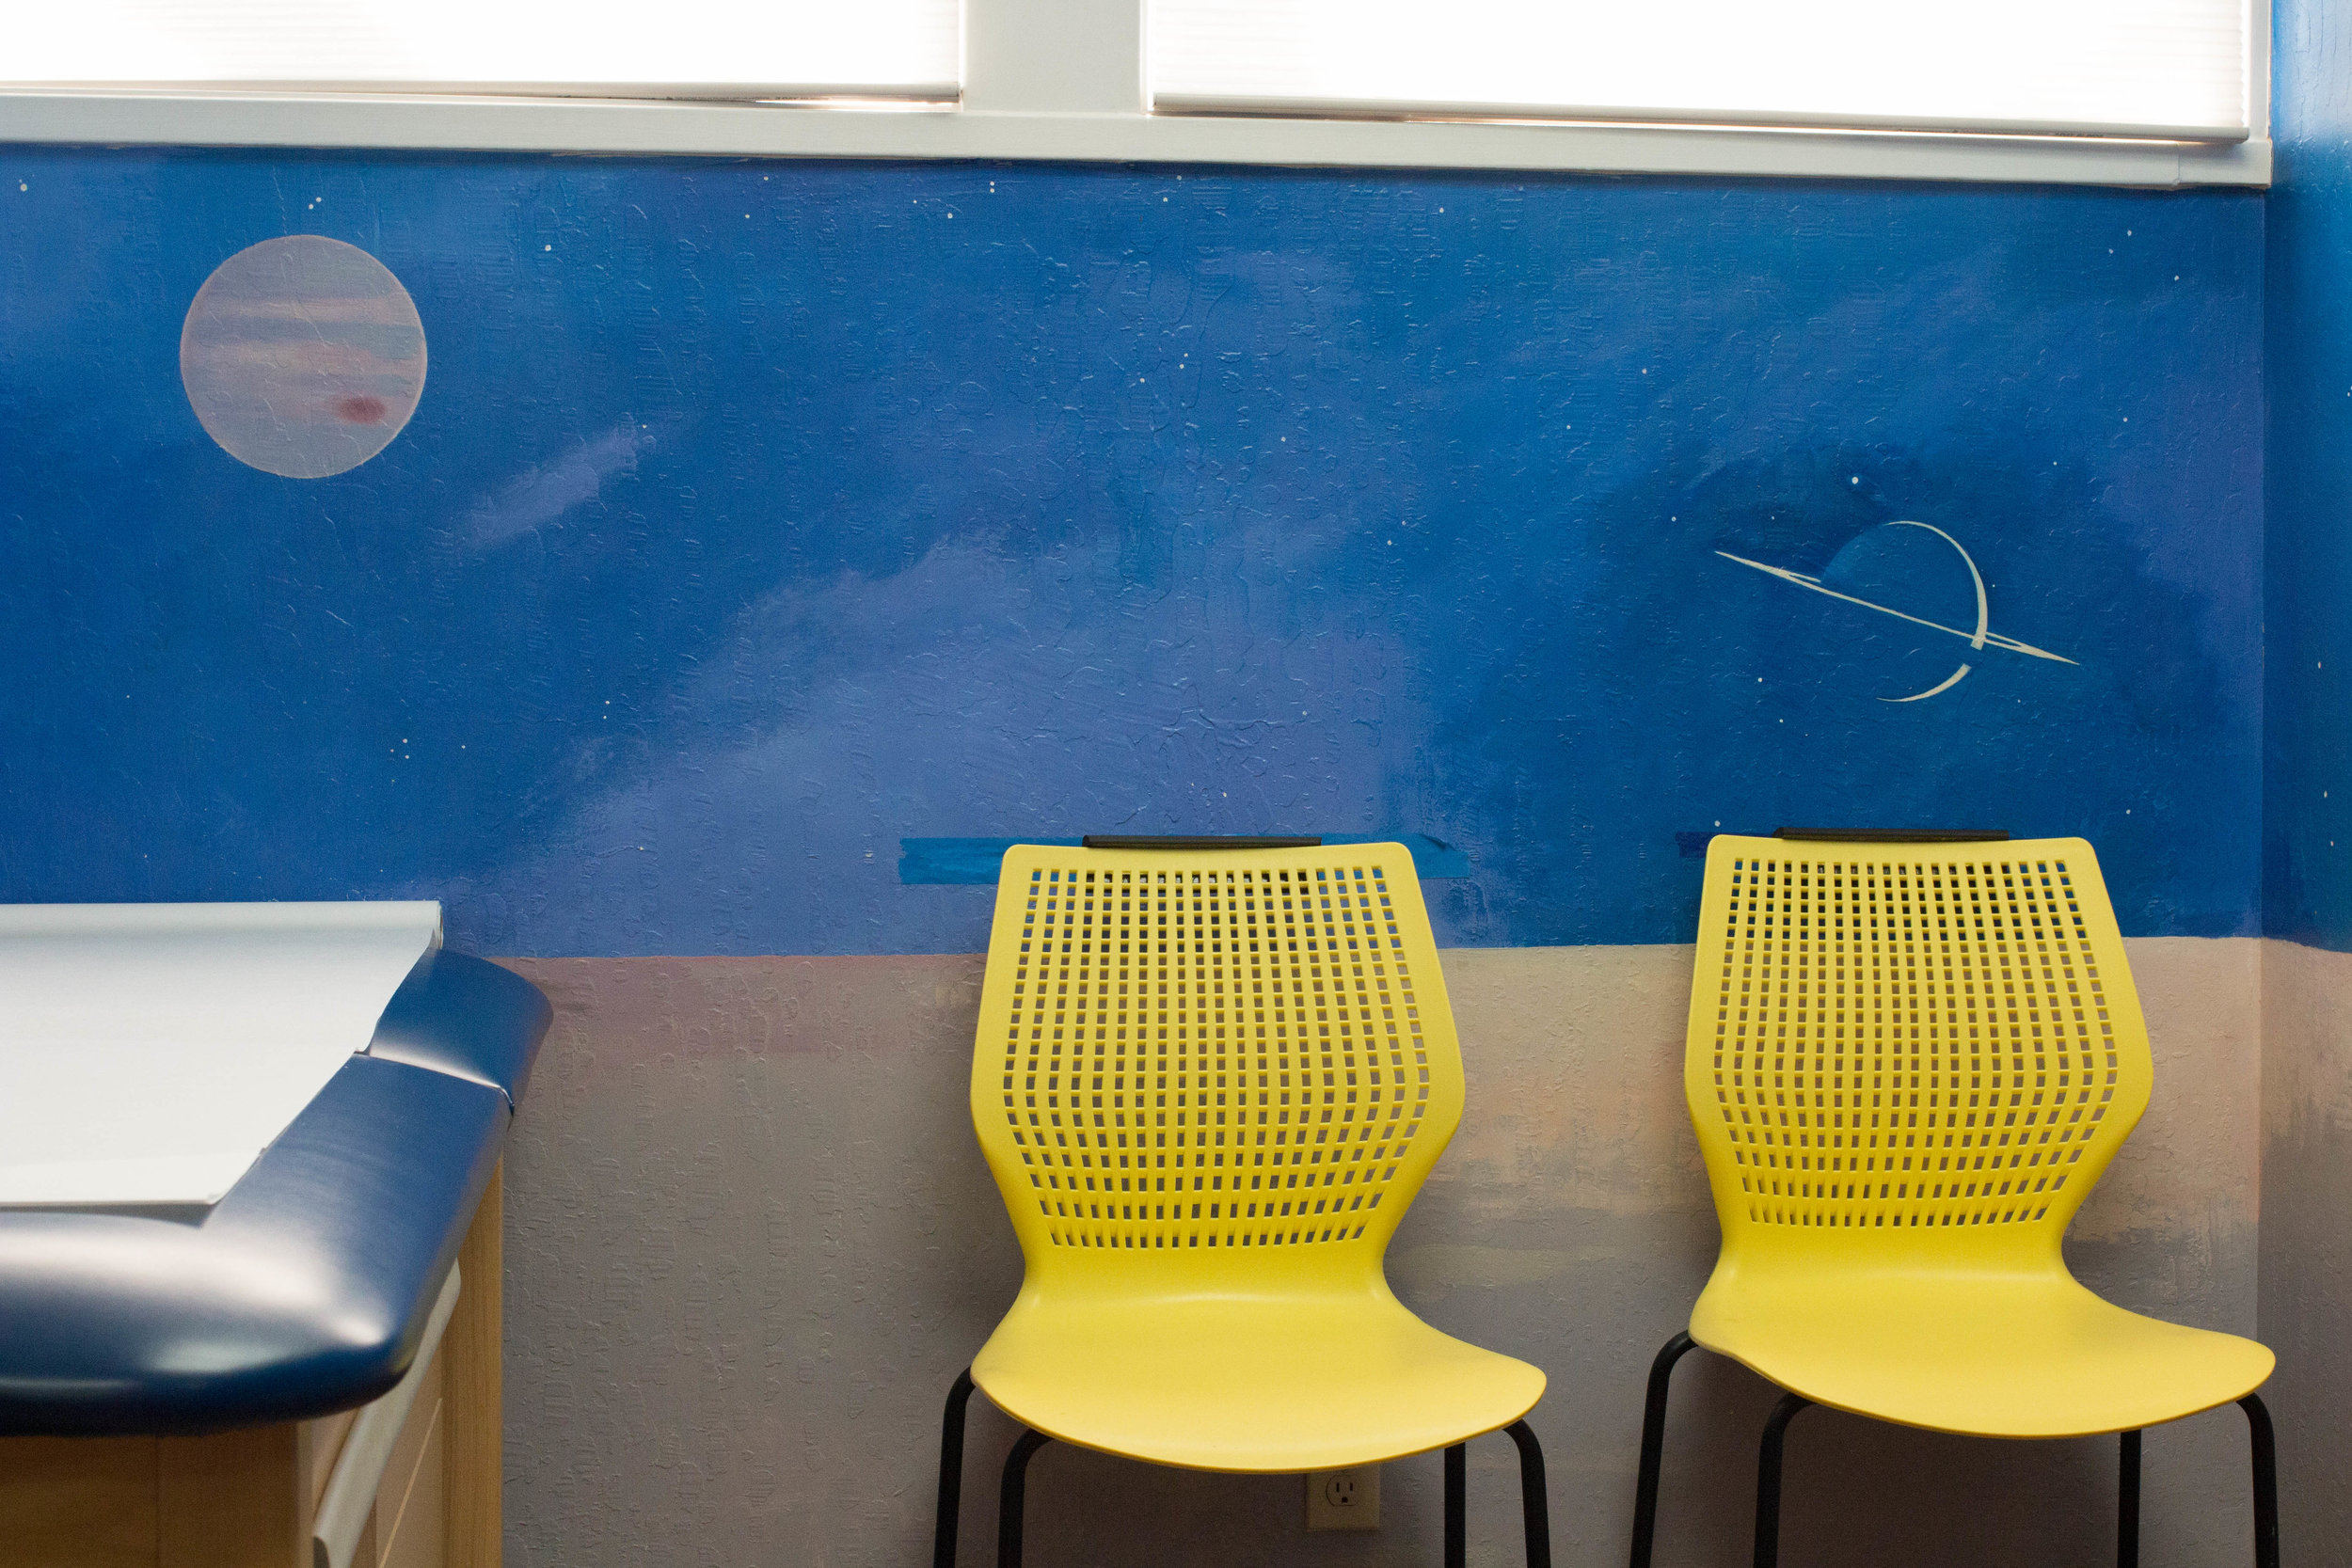 Our exam room murals